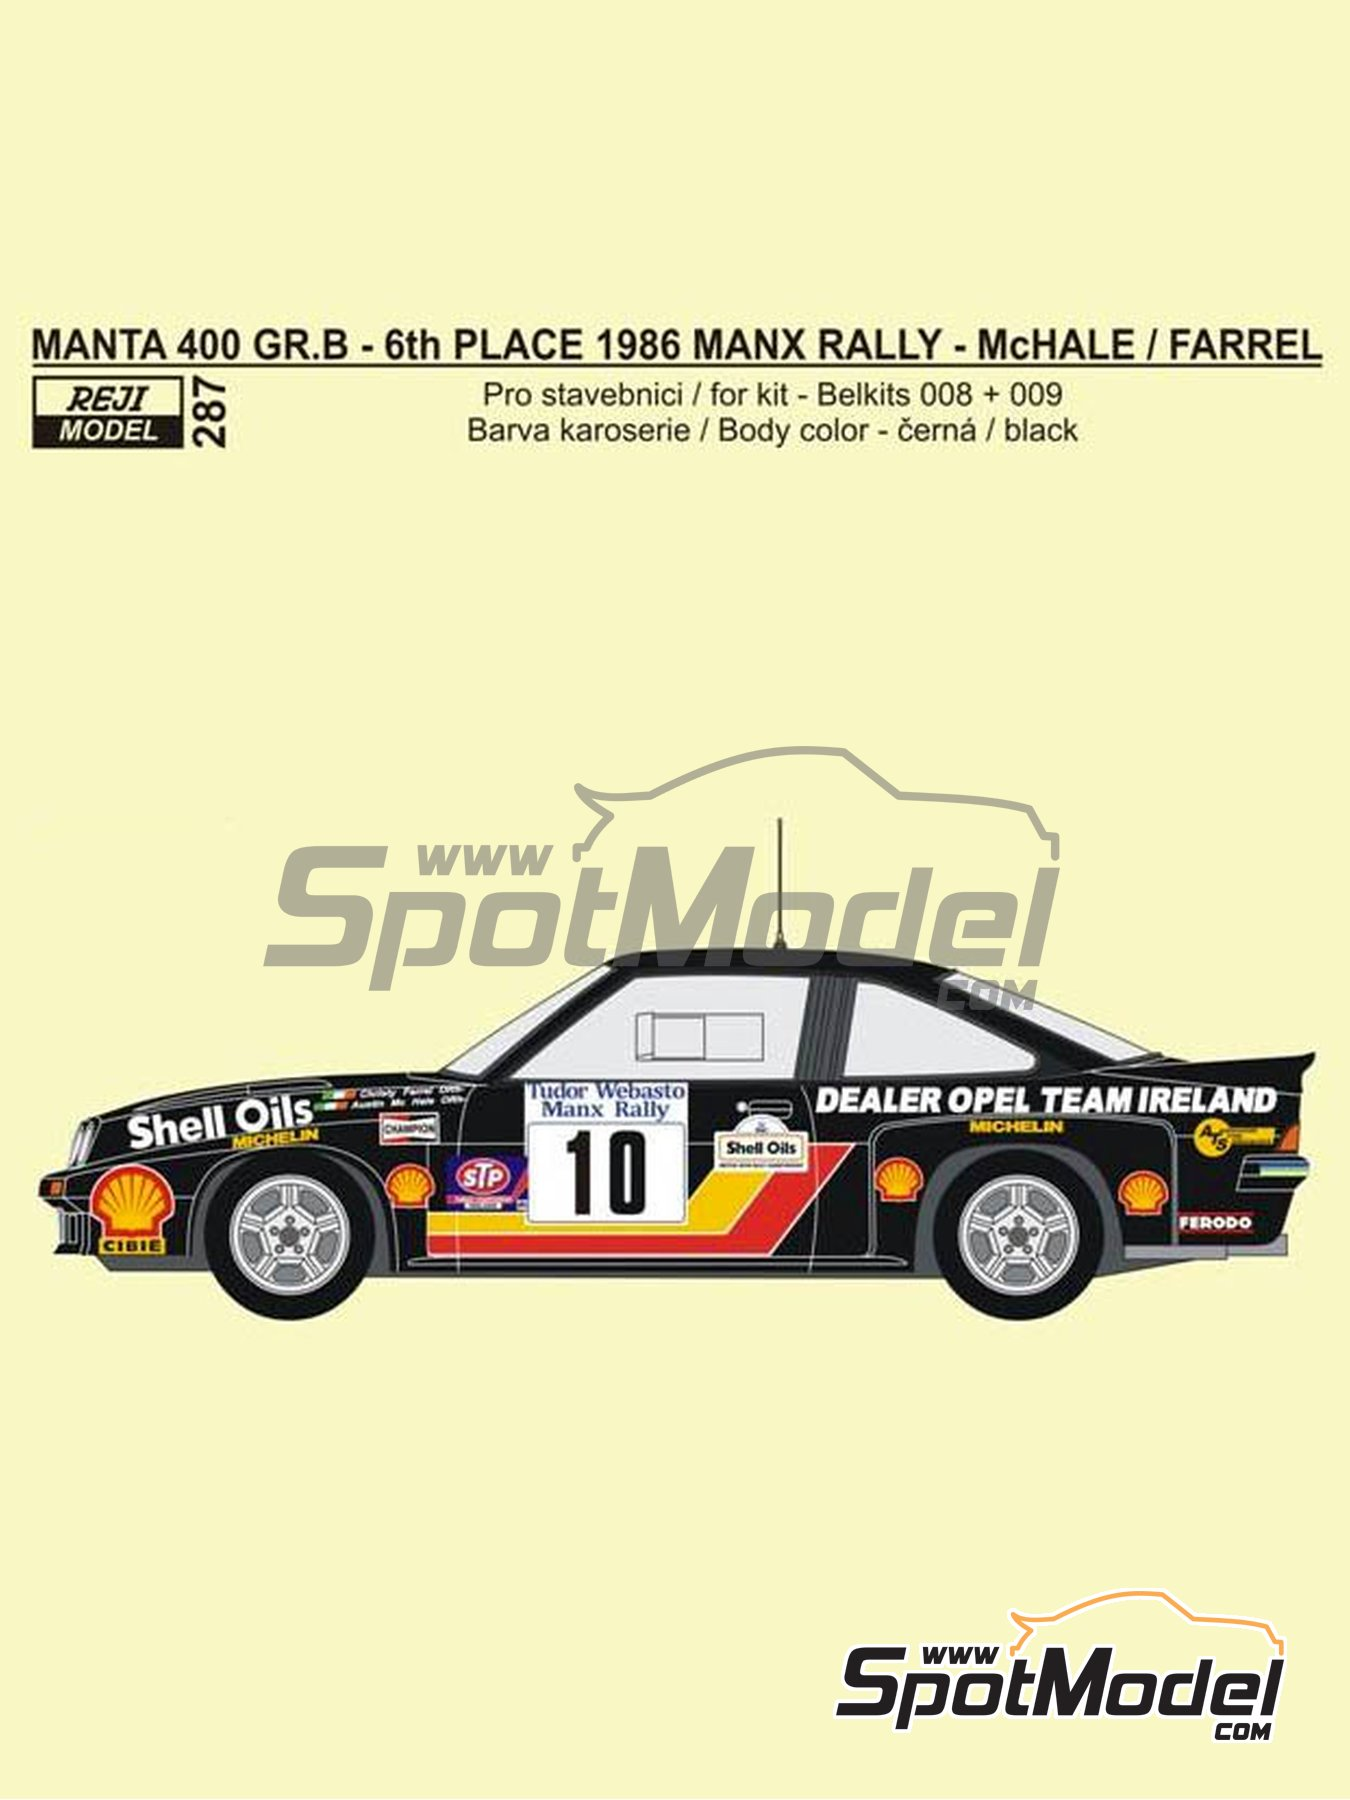 Opel Manta 400 Group B Dealer Opel Team Ireland - Tudor Webasto Manx International Rally 1986 | Marking / livery in 1/24 scale manufactured by Reji Model (ref. REJI-287) image